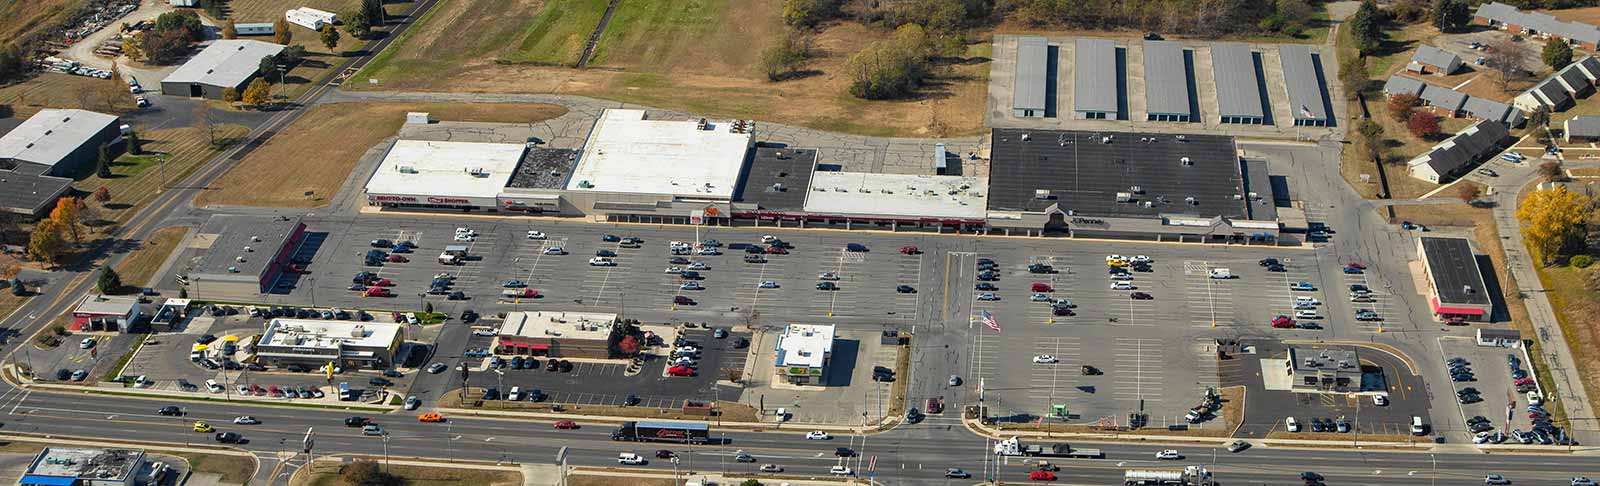 Aerial view of Fontaine Plaza in Bellefontaine Plaza, Ohio, part of The Leathery Company portfolio.